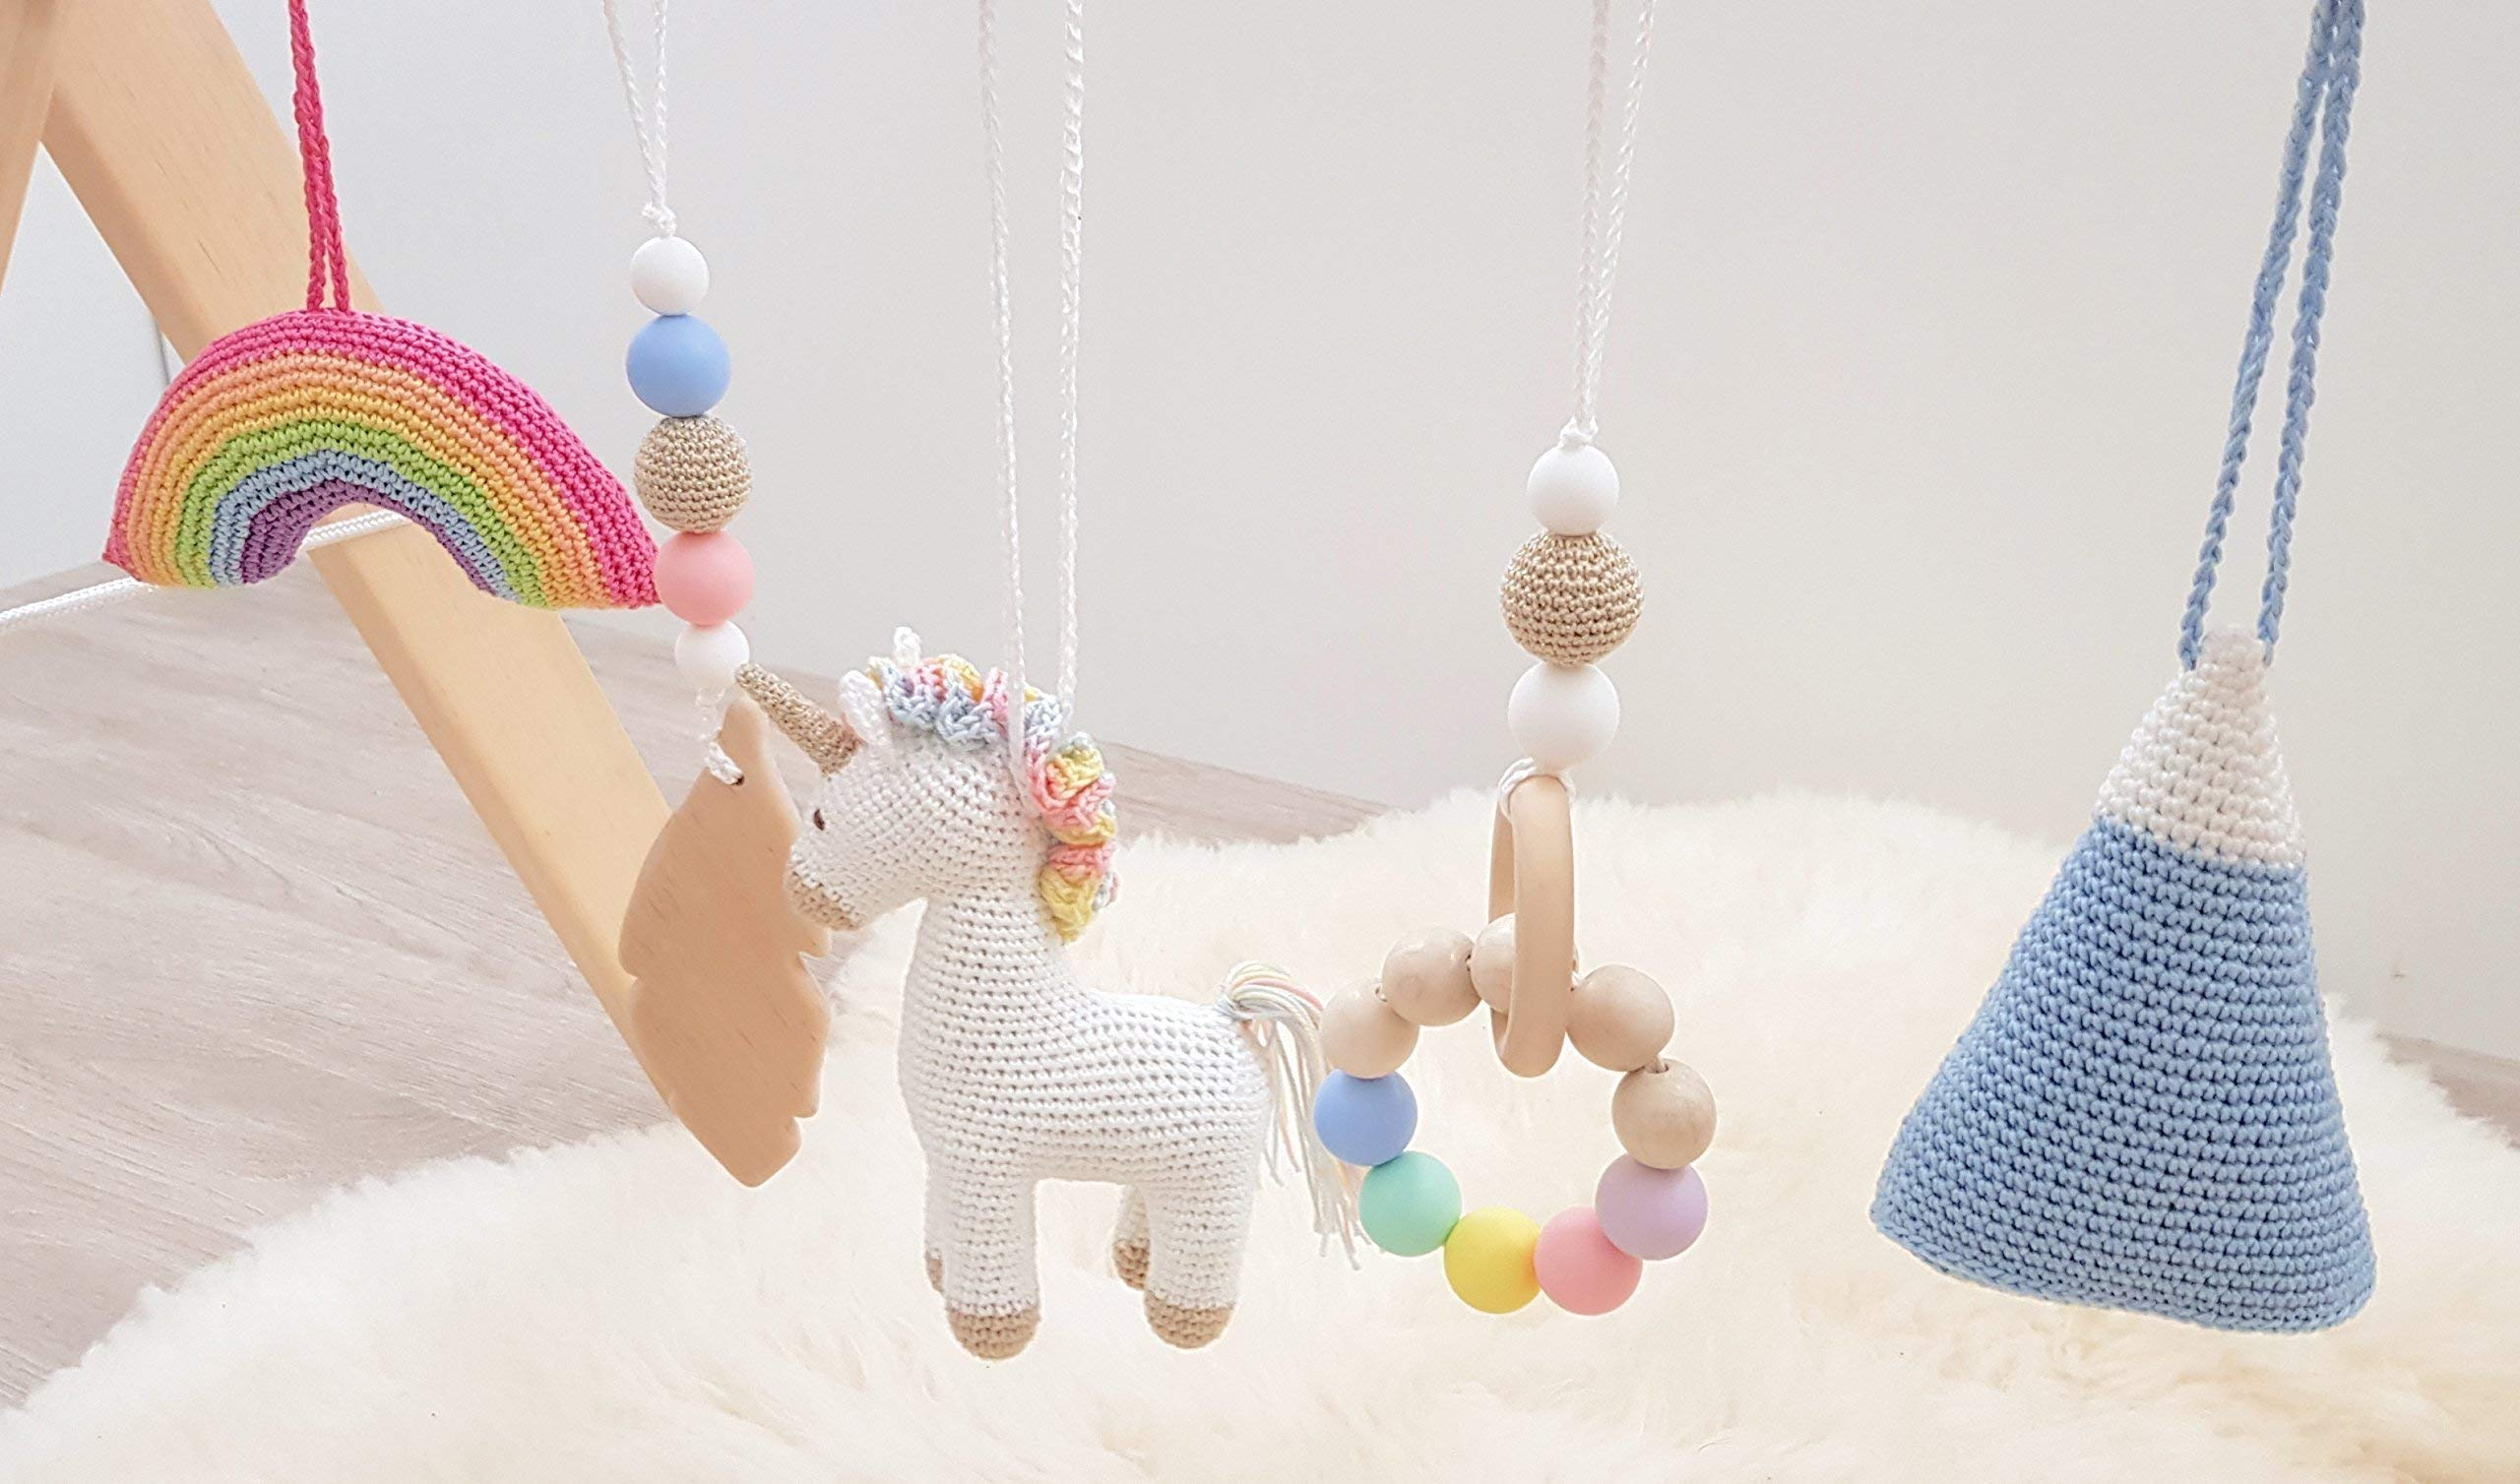 Rainbow Unicorn Baby Play Gym with 5 Mobiles: Unicorn, Rainbow, Mountain, Feather, Beaded Ring. Handmade by… 6